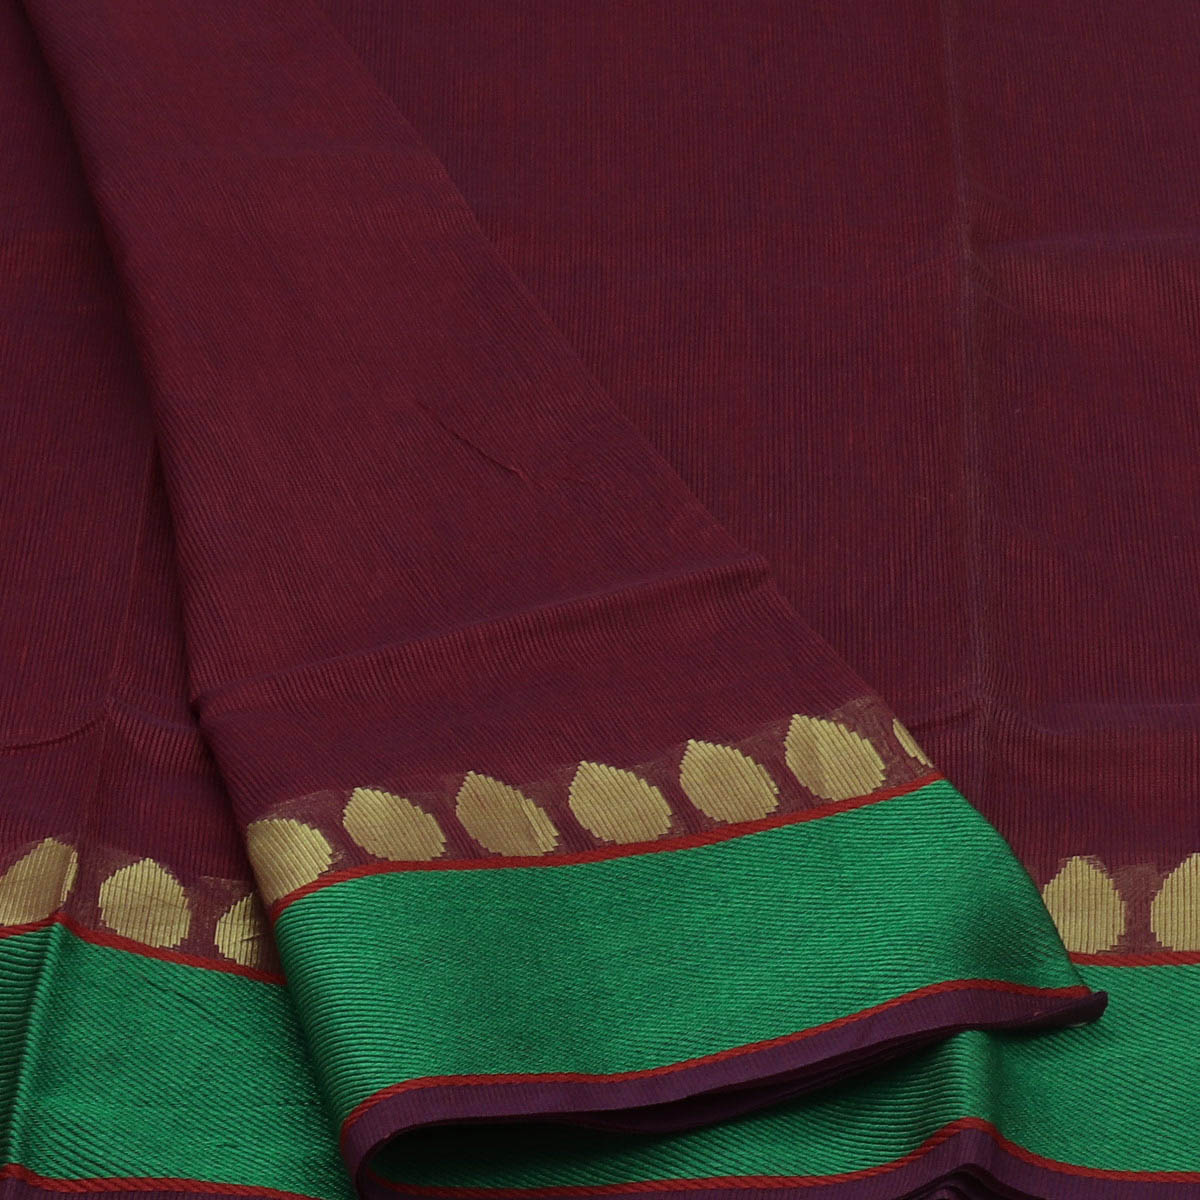 Kota Cotton Saree Maroon with Purple Lines and Green with Buds Zari Border